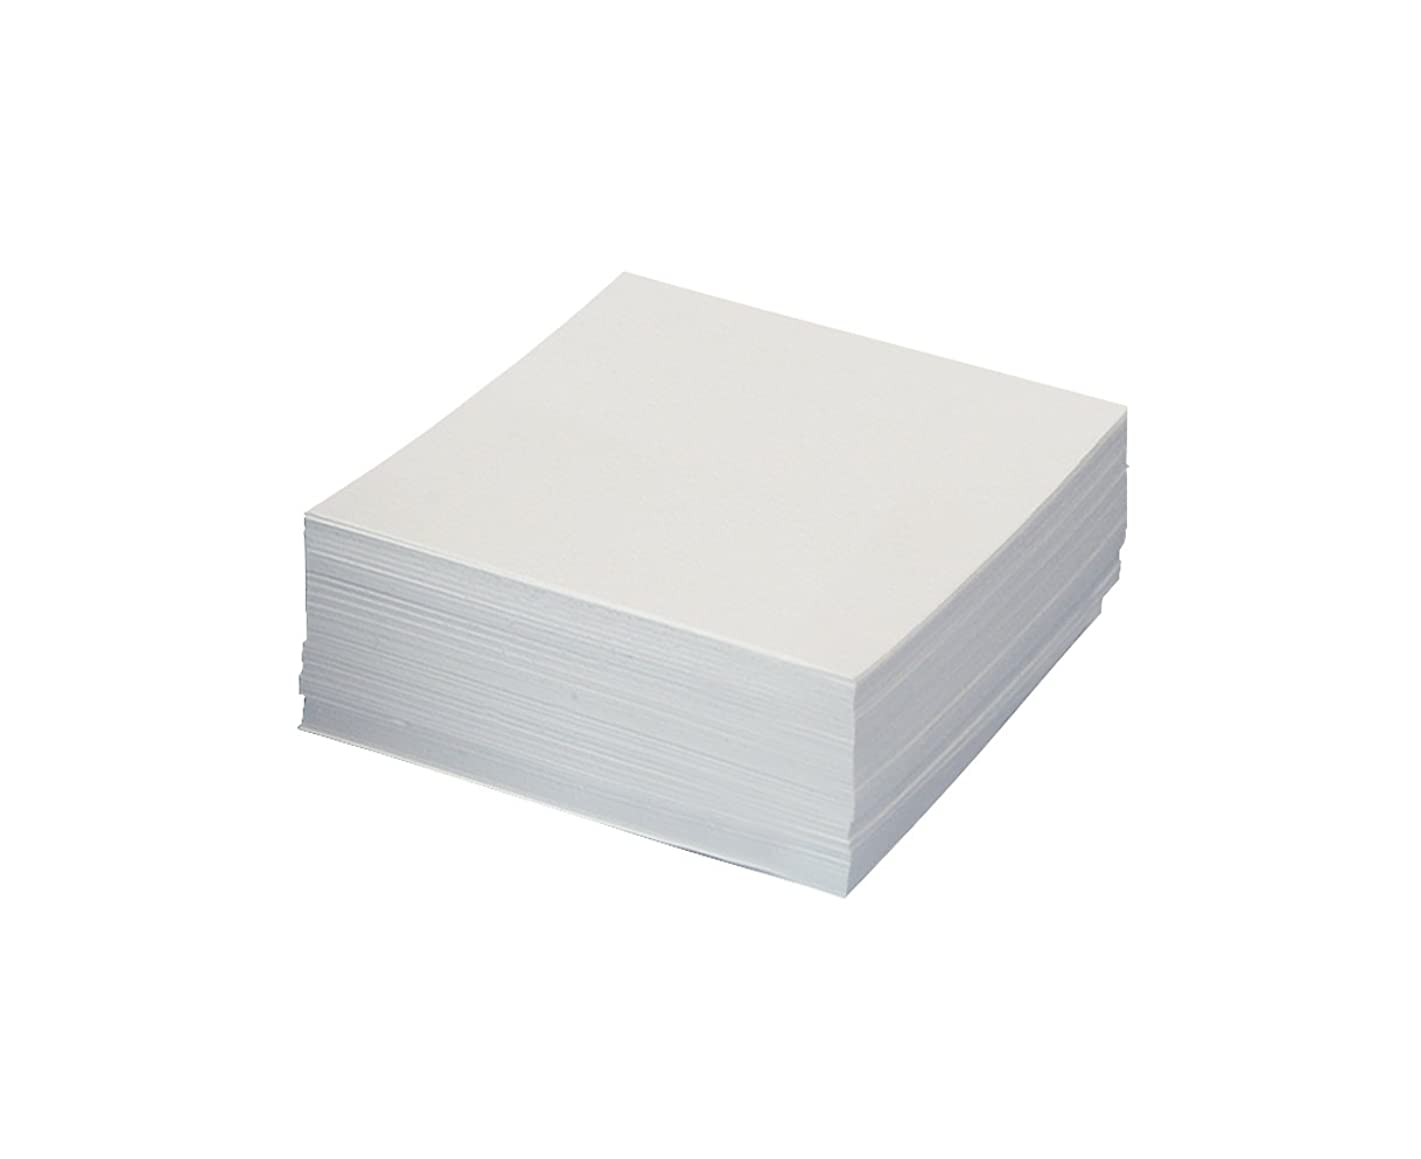 Munktell 160 500 Grade FN2 Chromatography Filter Paper, Sheet, 580mm W x 600mm L (Pack of 100)